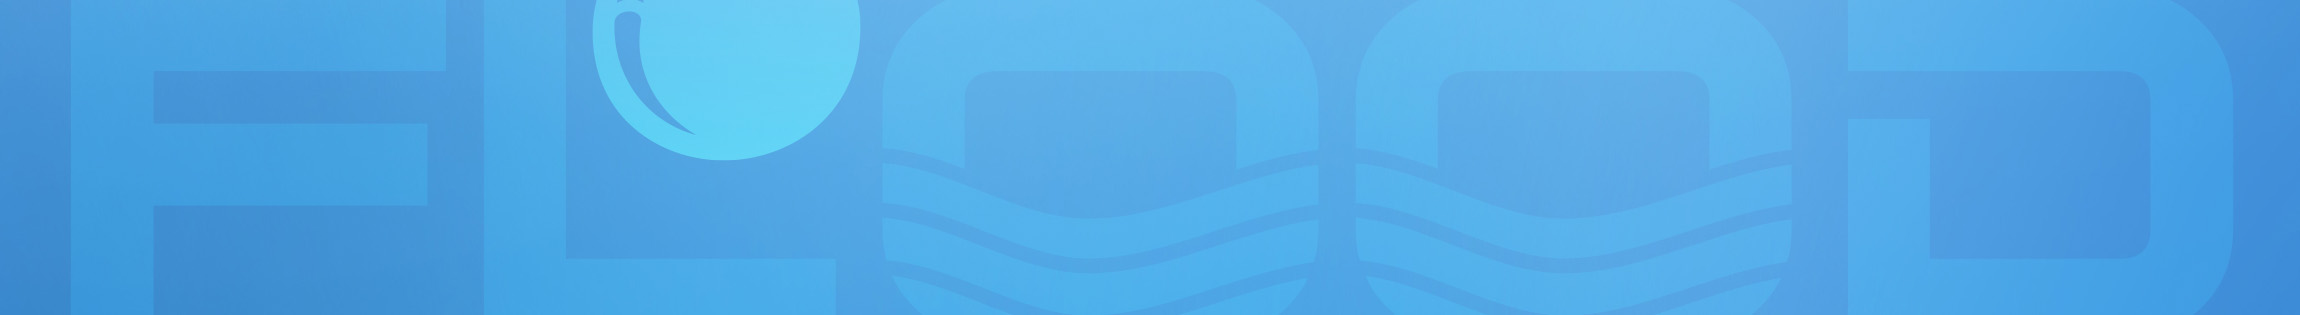 Flood Tech 3 Subpage Banners About